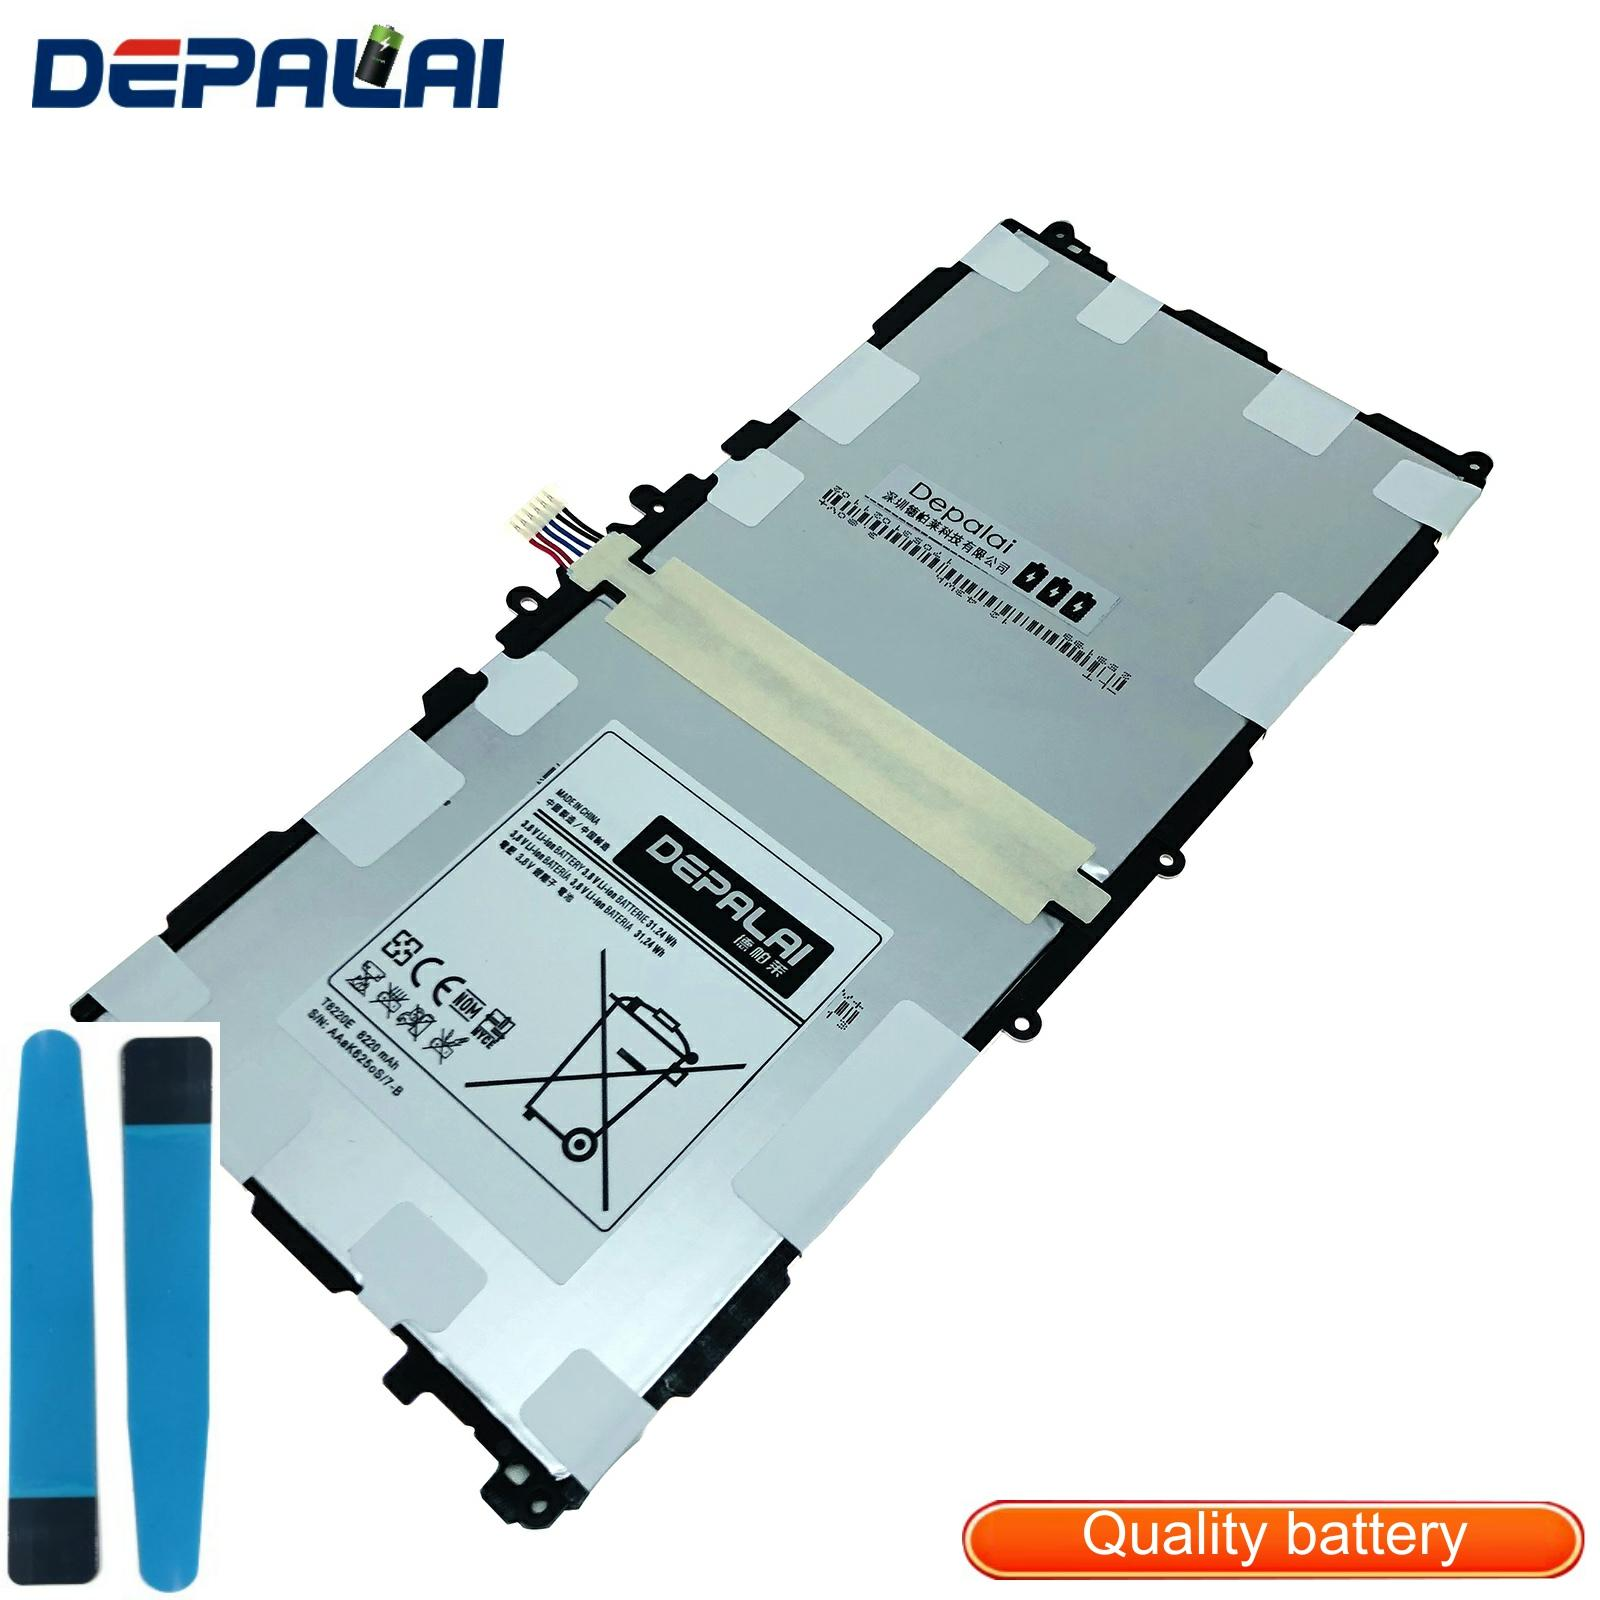 T8220E Tablets Replacement <font><b>Battery</b></font> For <font><b>Samsung</b></font> Galaxy Note 10.1 2014 Edition SM-P601 P600 T520 P601 <font><b>P605</b></font> P607 8220mAh Real image